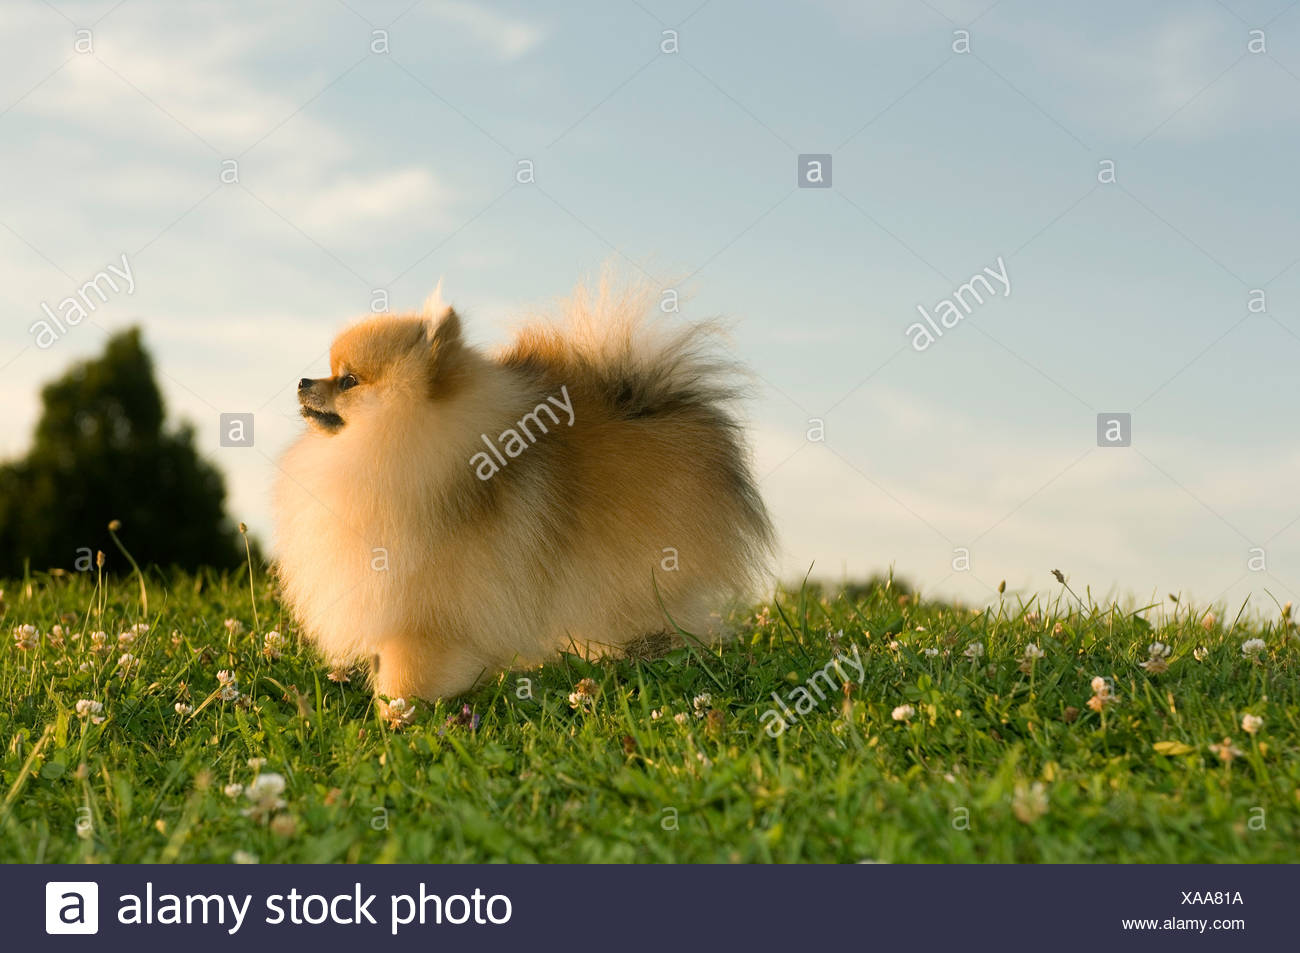 tiny dog standing on meadow - Stock Image